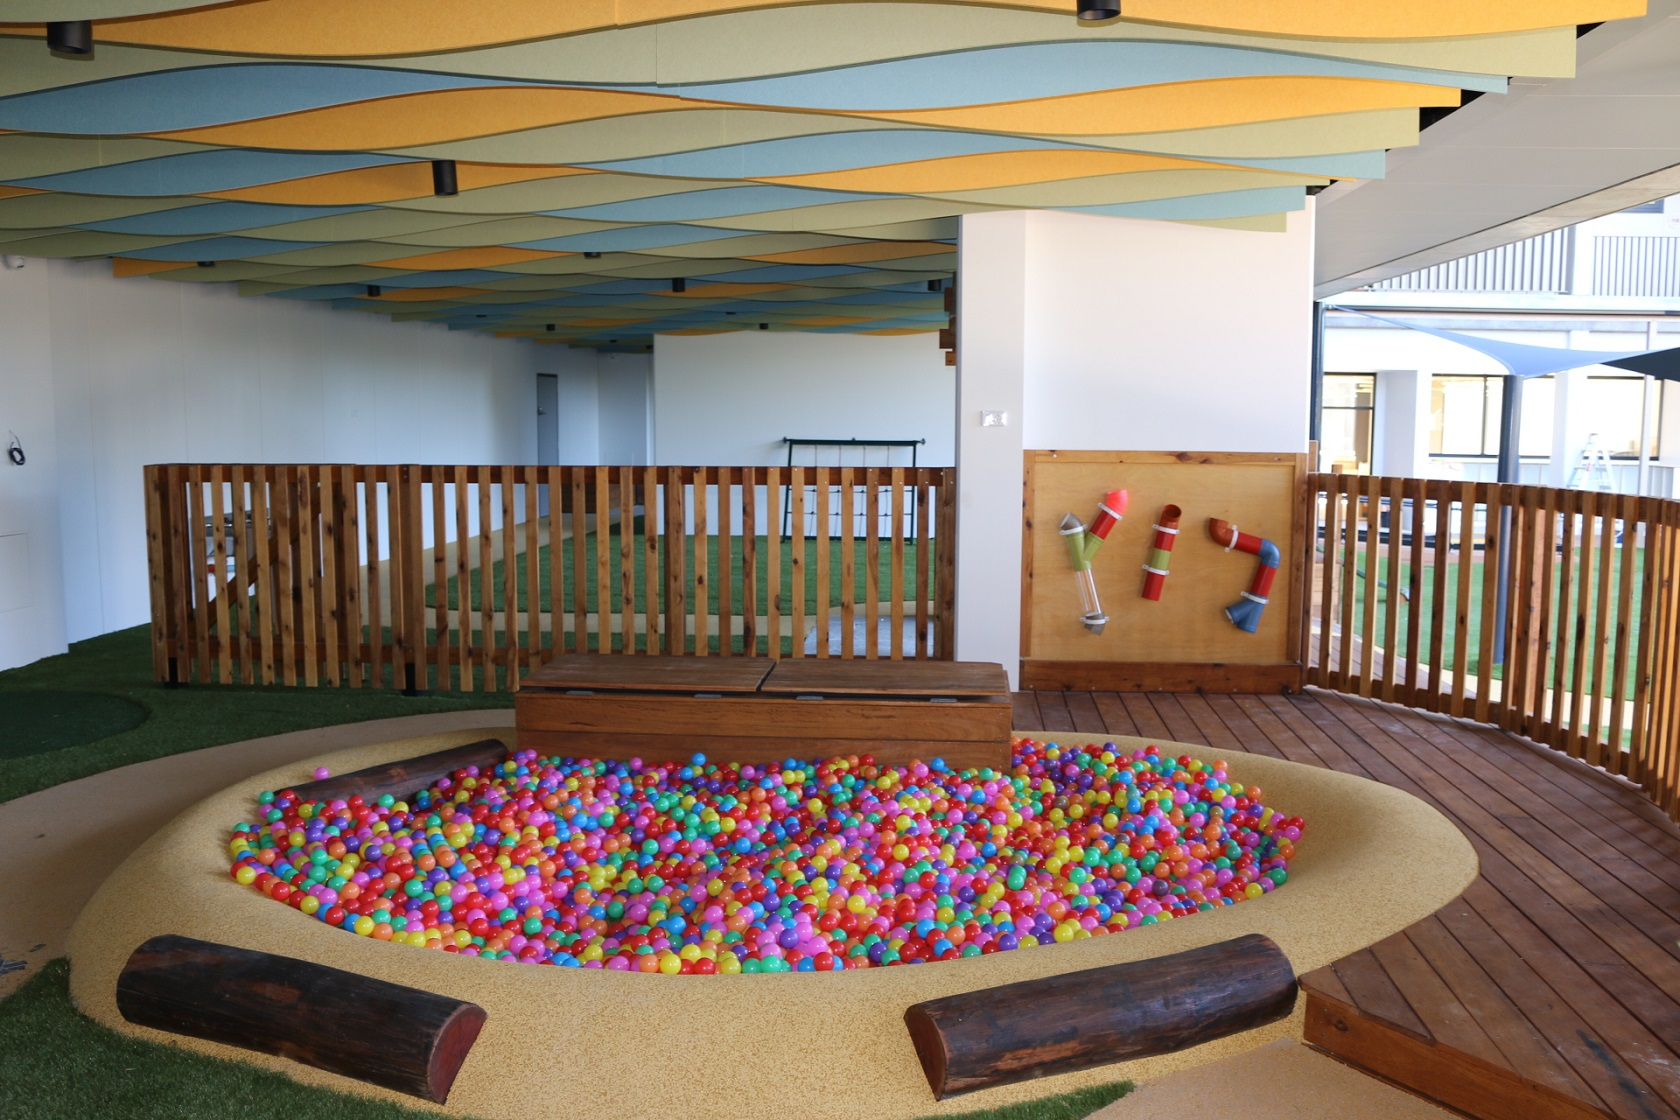 ball pit - northryde